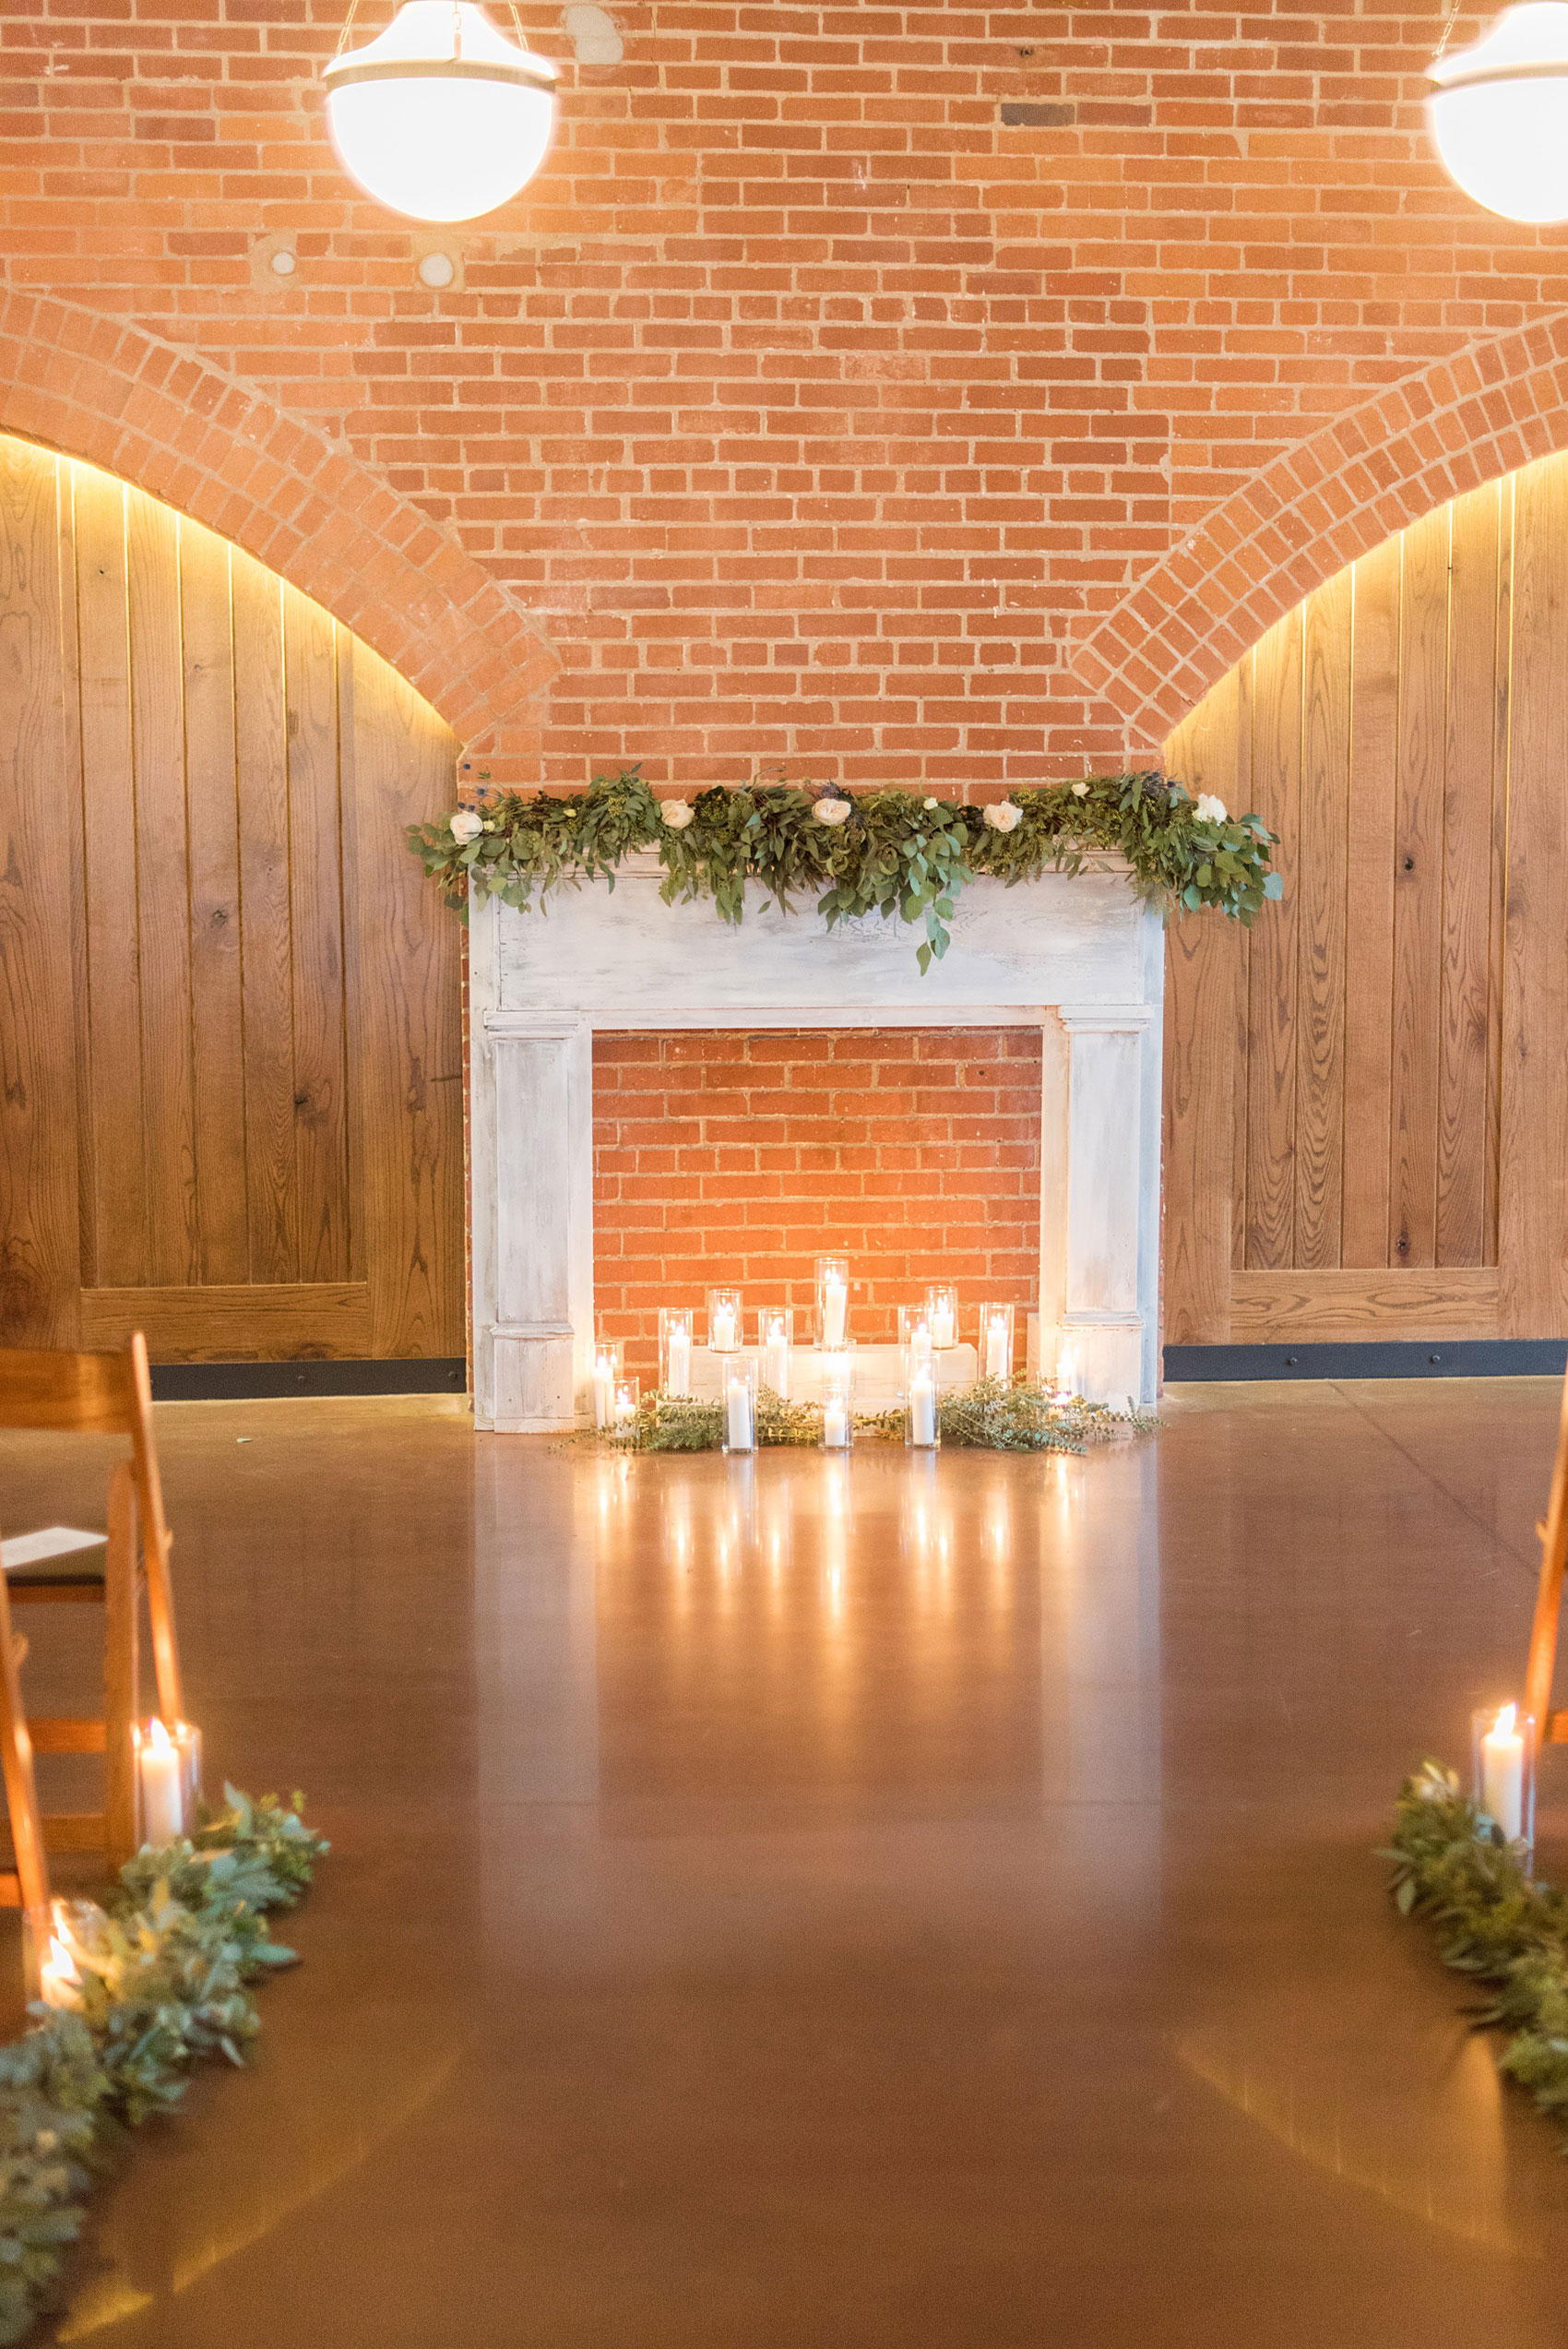 Durham wedding photos at The Cookery by Mikkel Paige Photography in North Carolina. The bride's father created a faux fireplace, decorated with lots of candlelight and green garland and white roses. It served as the indoor ceremony backdrop and eucalyptus lined the aisle.